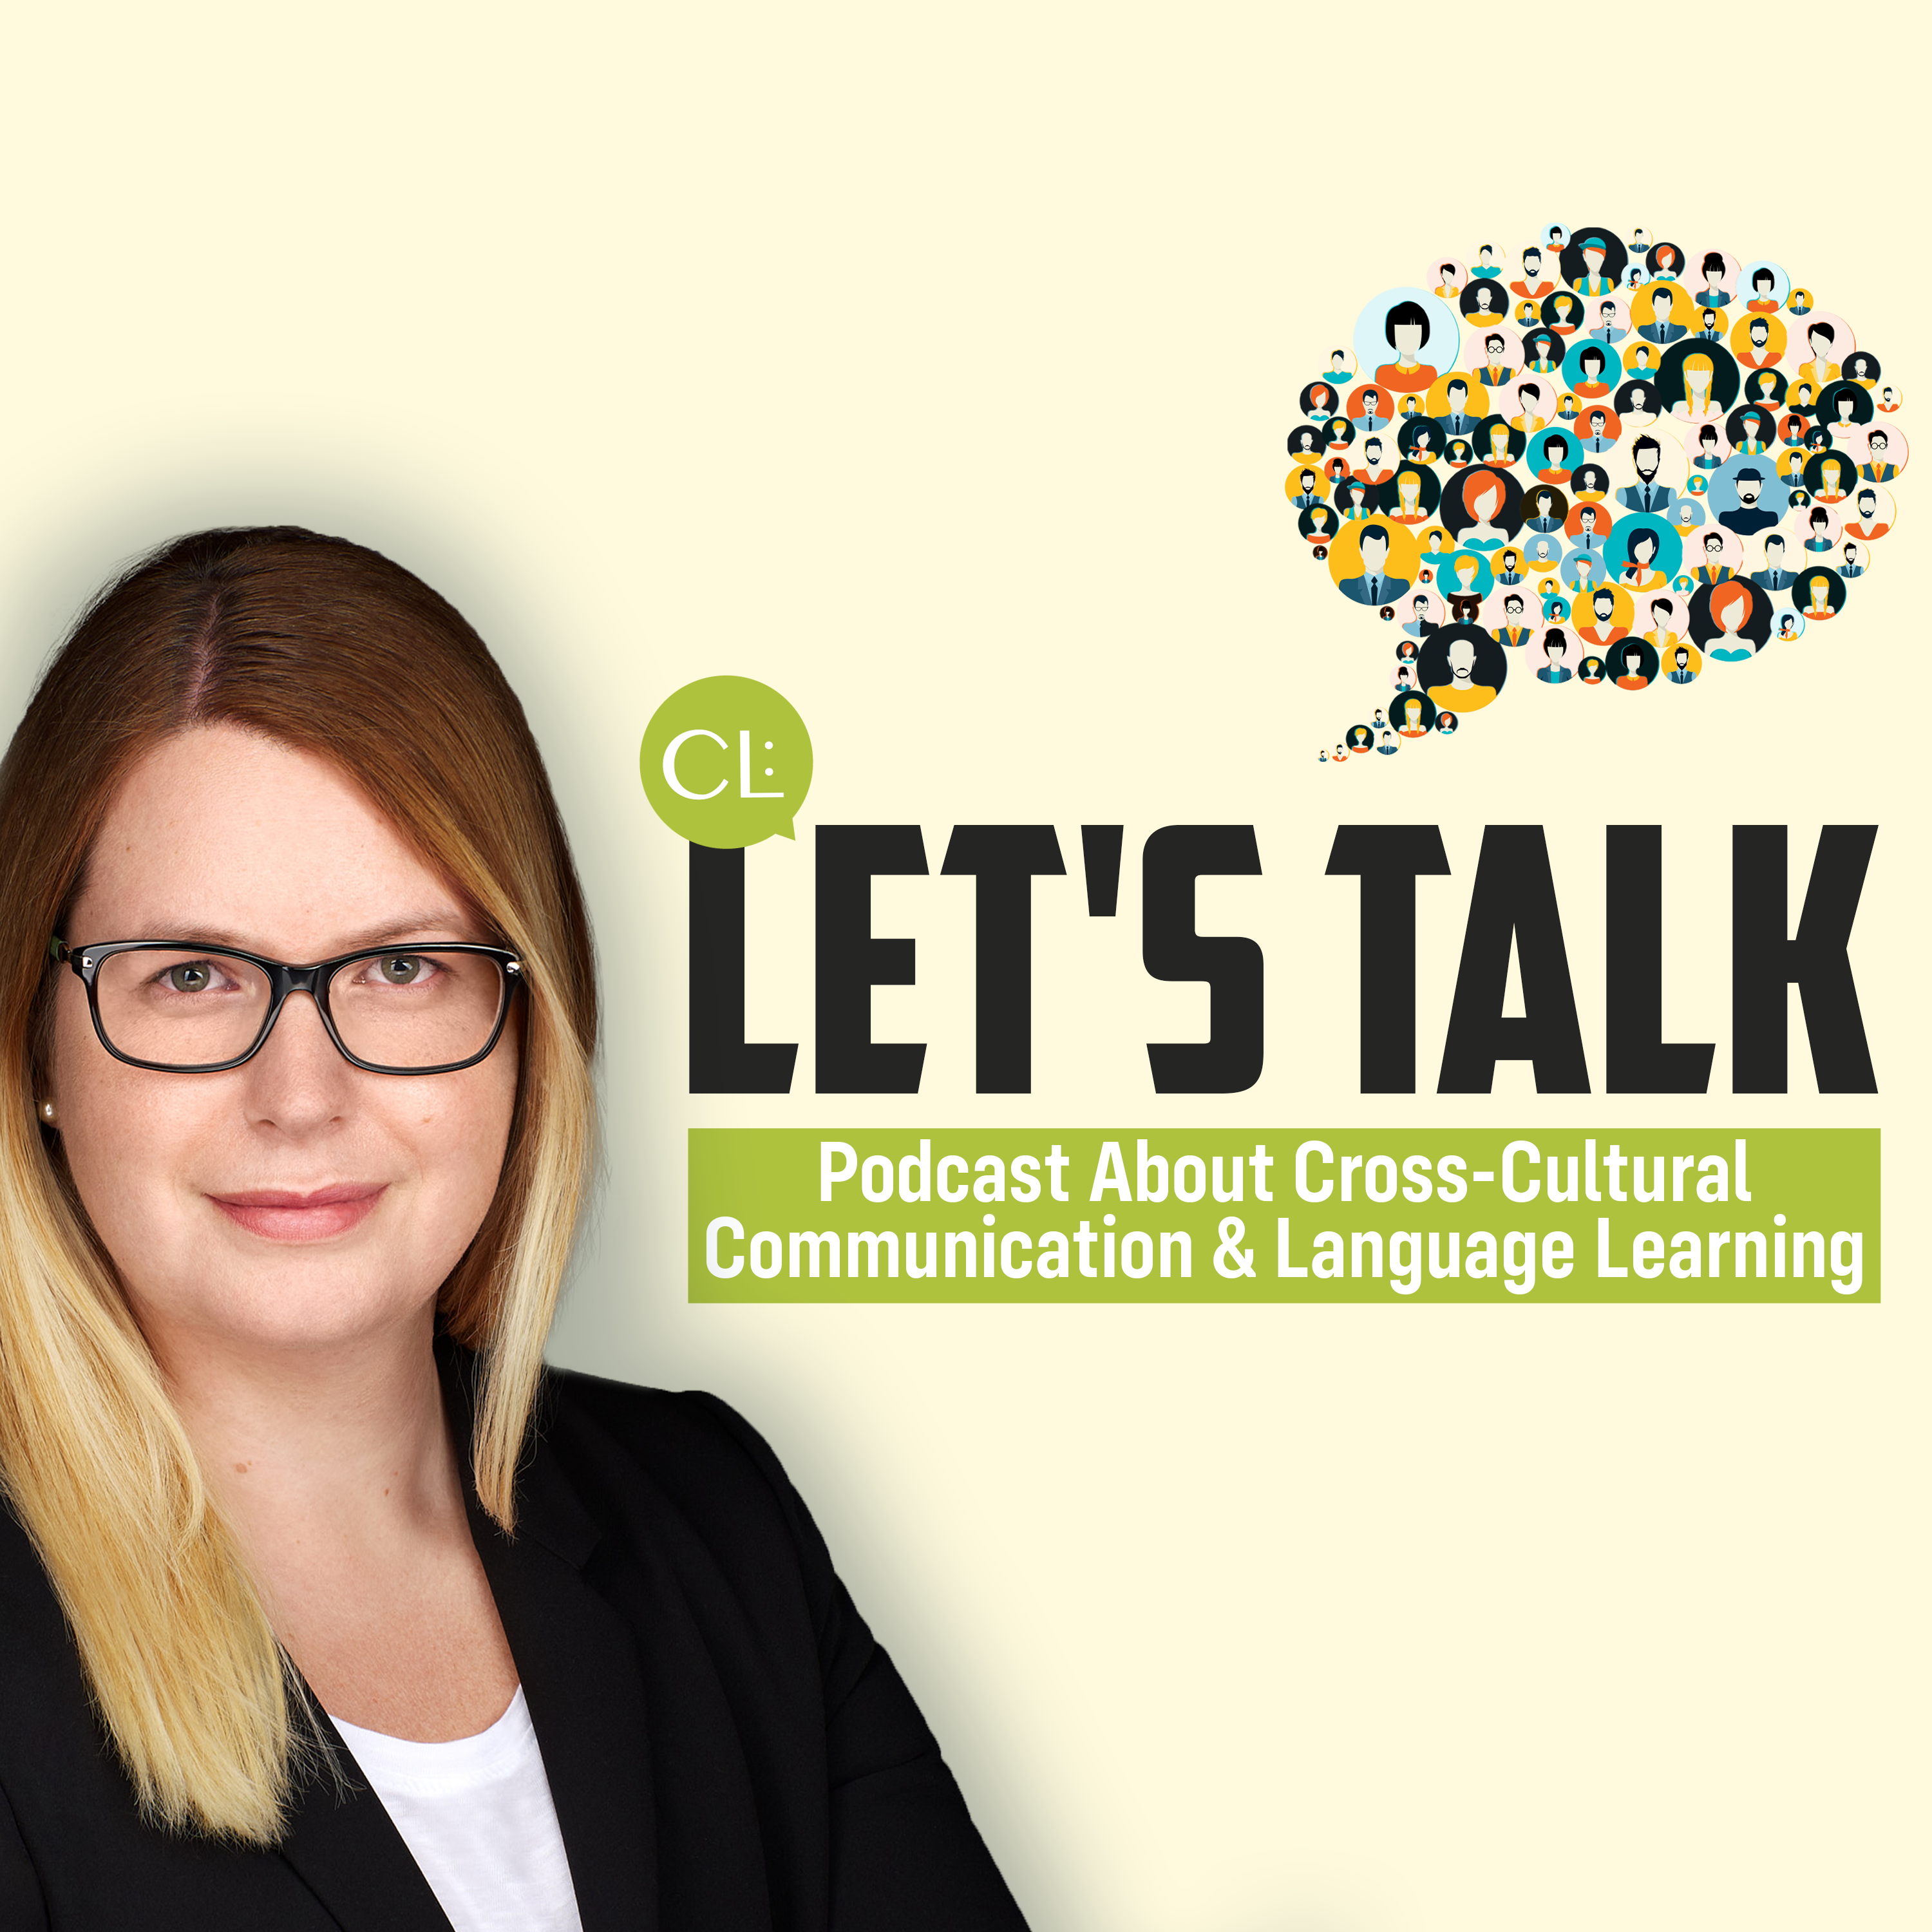 CL: Let's talk | Podcast About Cross-Cultural Communication & Language Learning show art